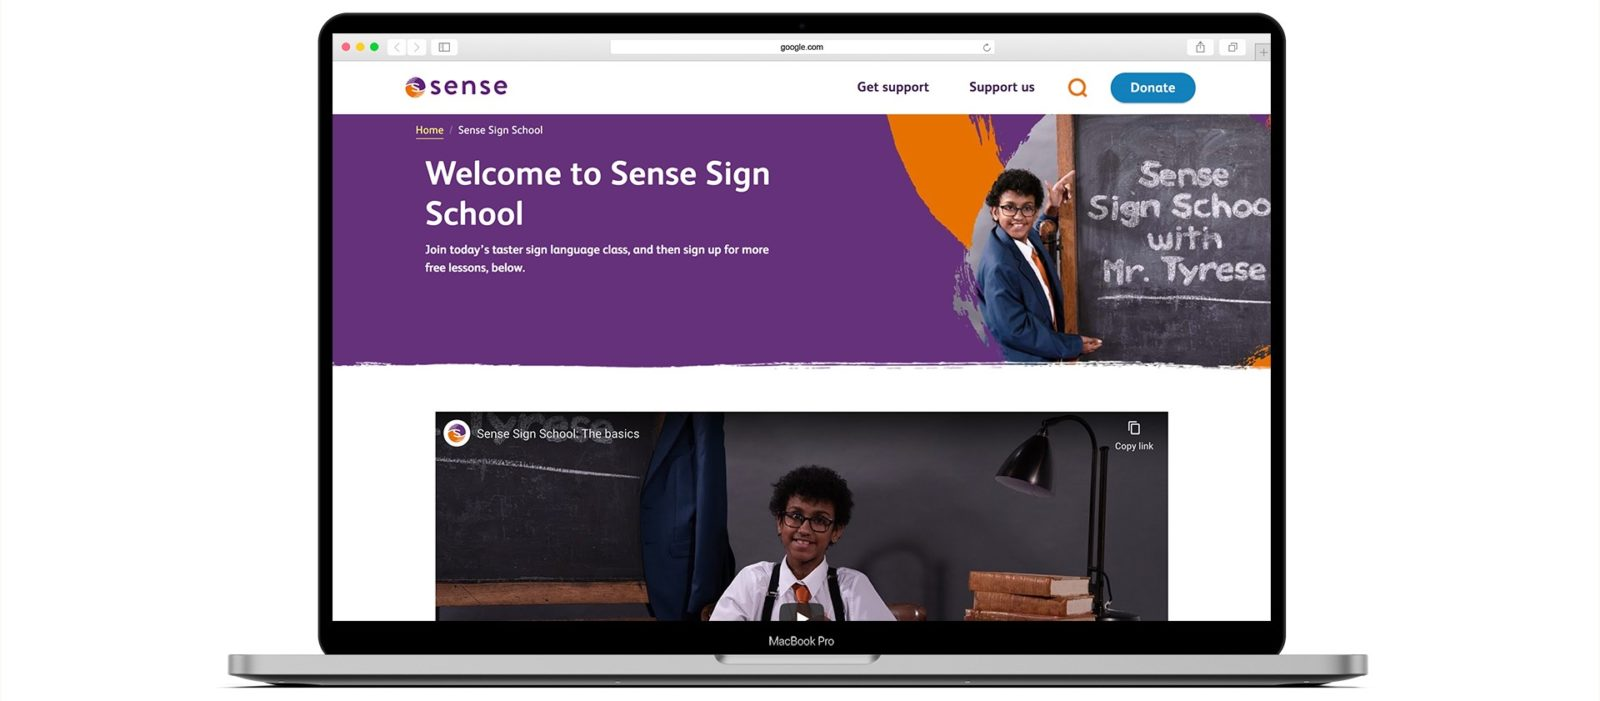 Desktop mock-up of Sense Sign School website